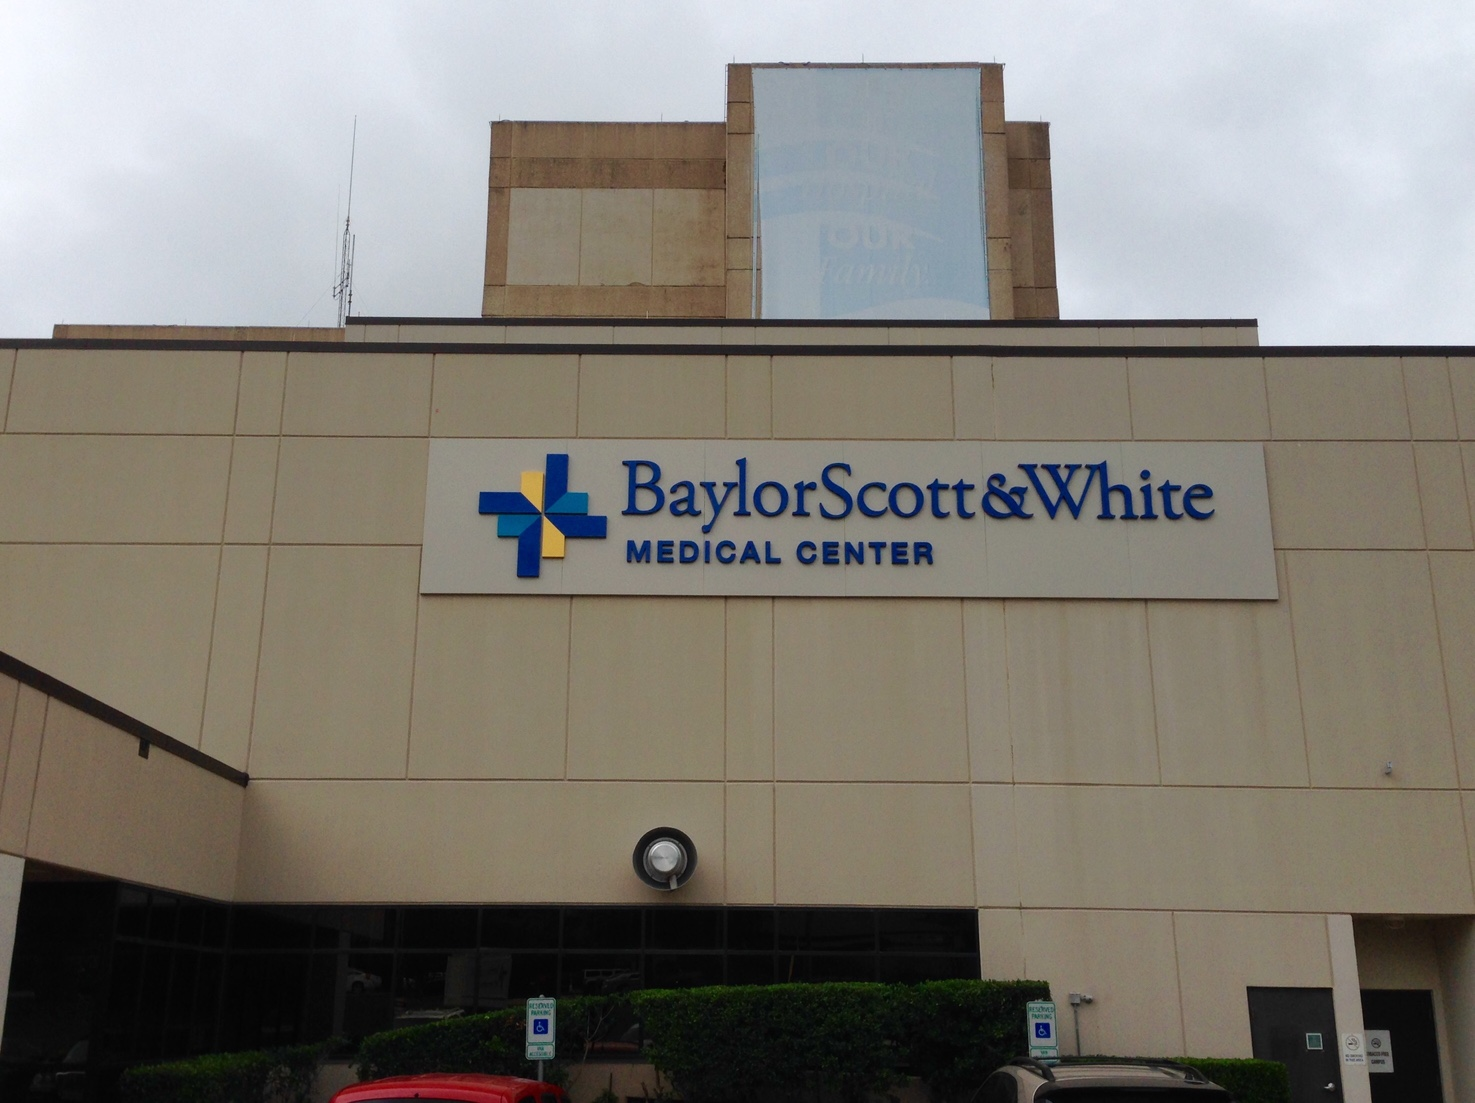 Doctors Hospital is now Baylor Scott & White Medical Center – White Rock. (Photo by Christina Hughes Babb)